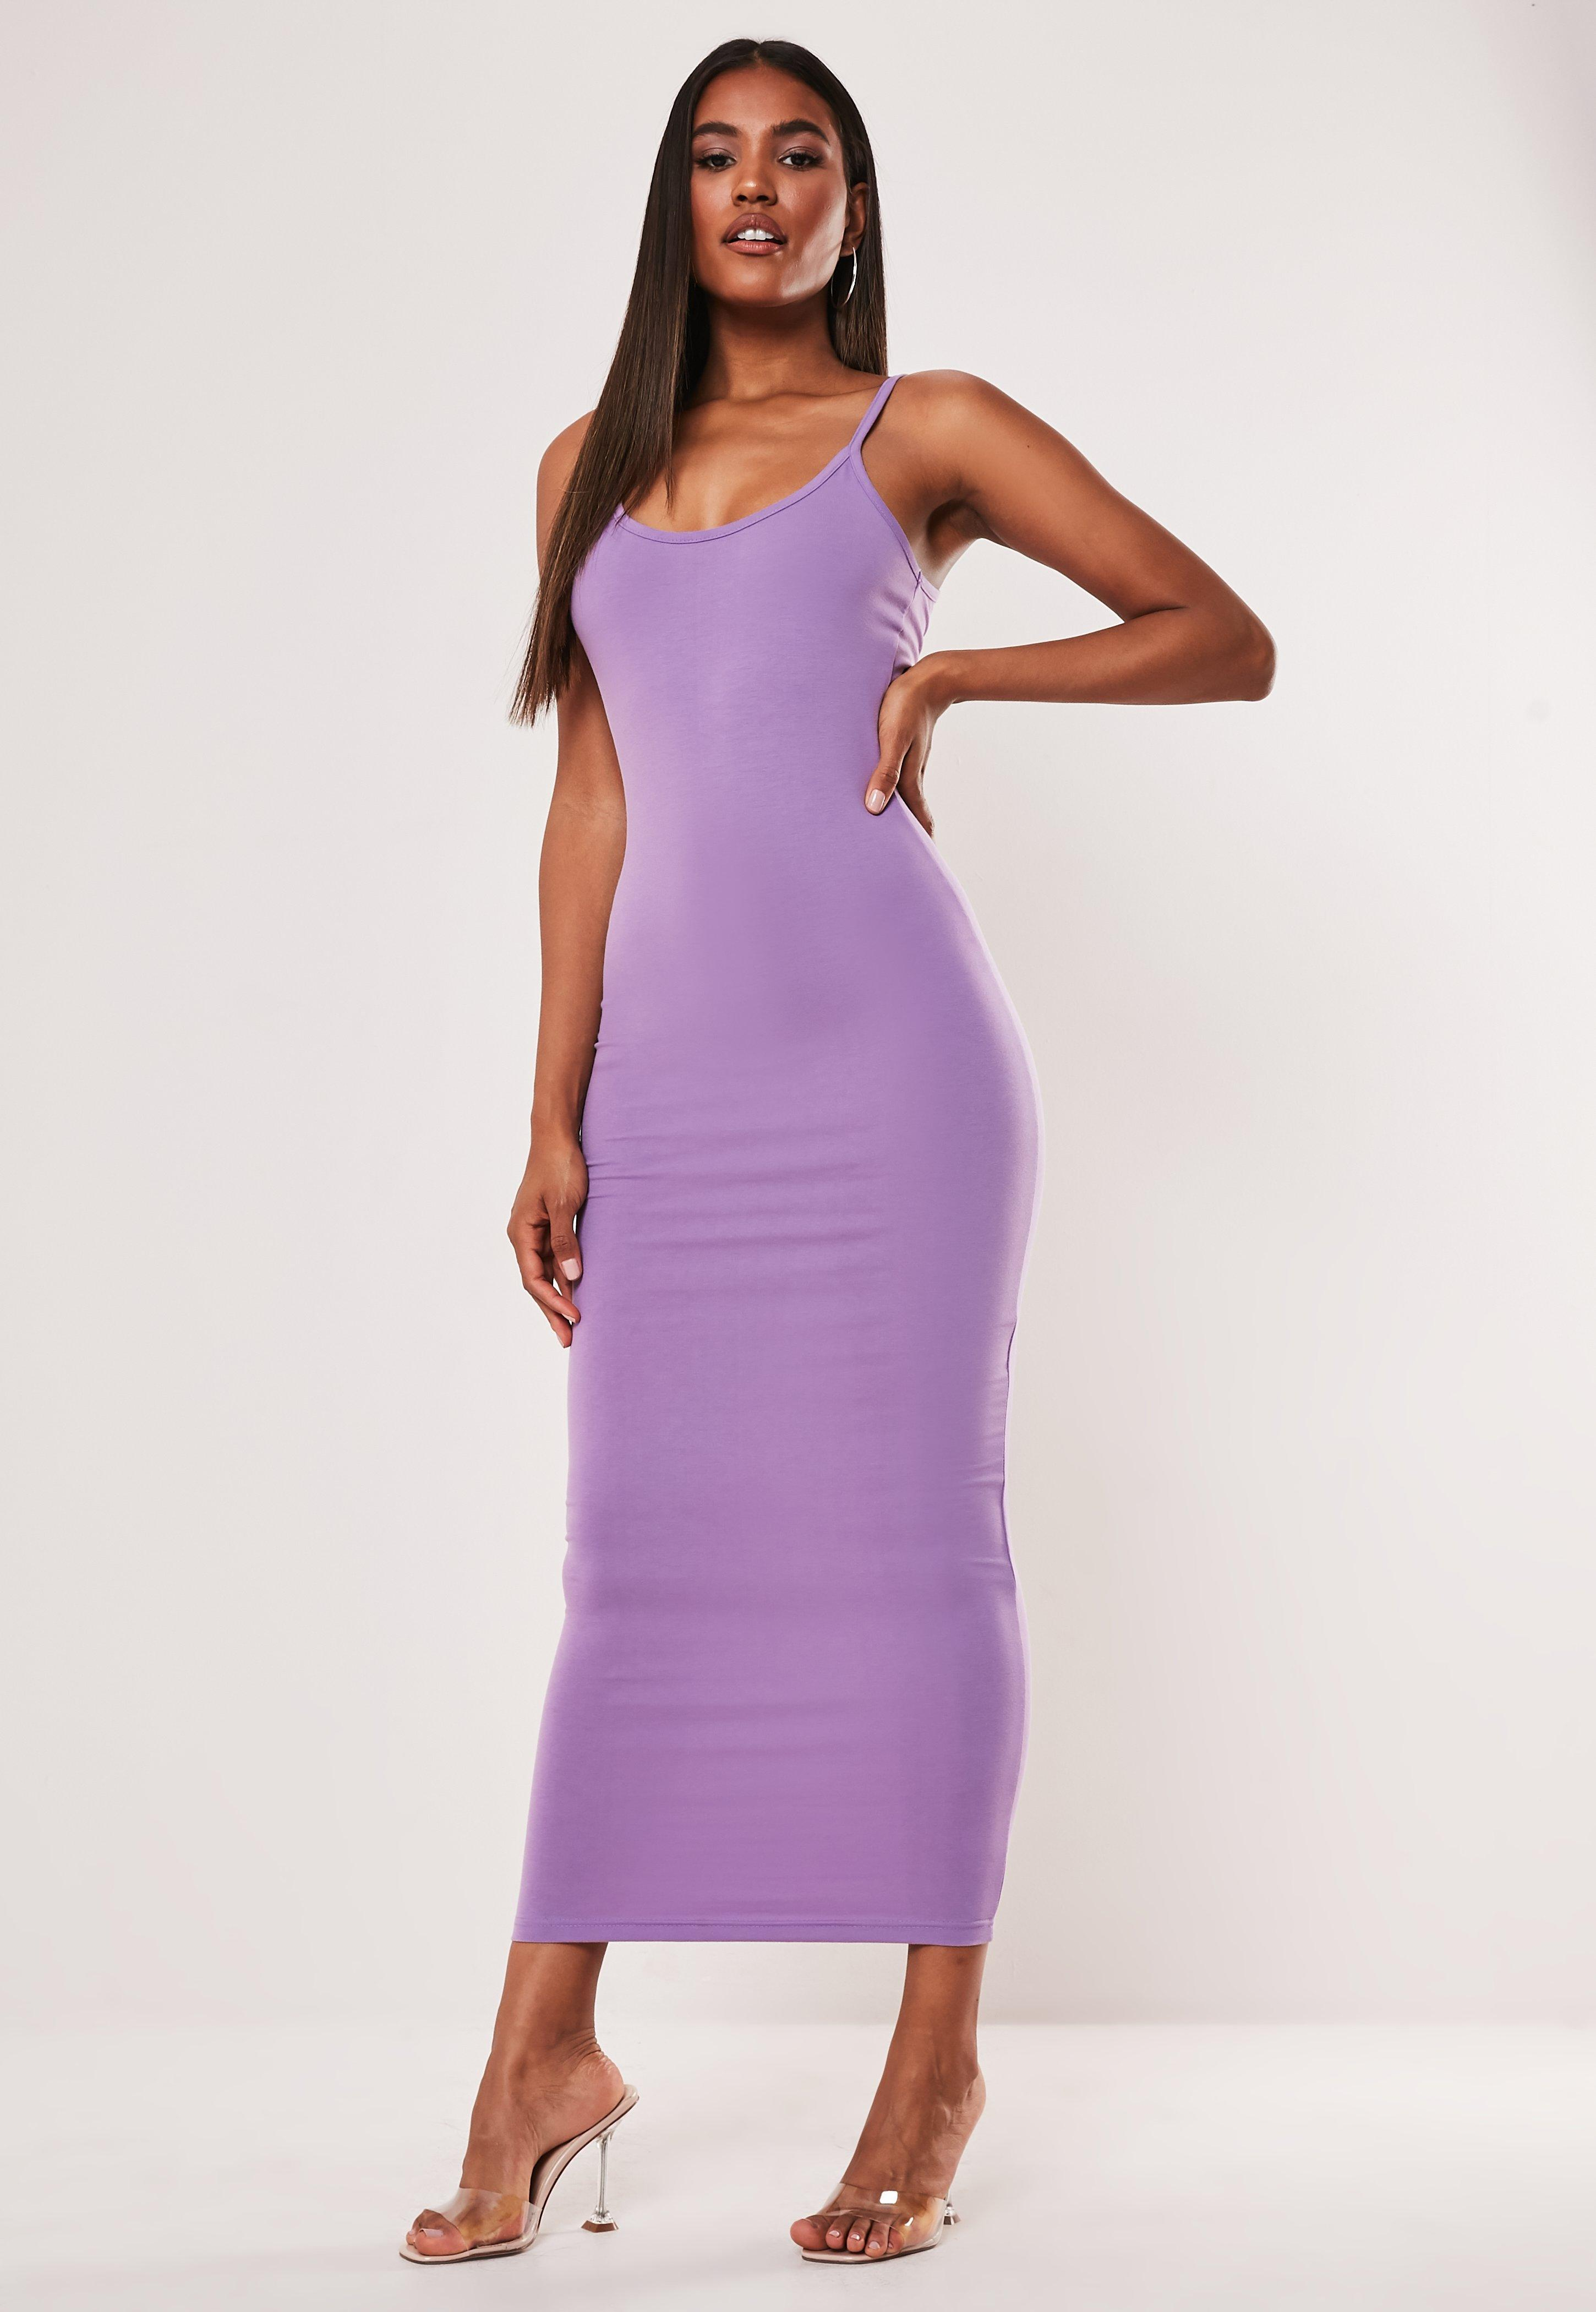 classic fit clearance prices undefeated x Purple Strappy Bodycon Midi Dress   Missguided